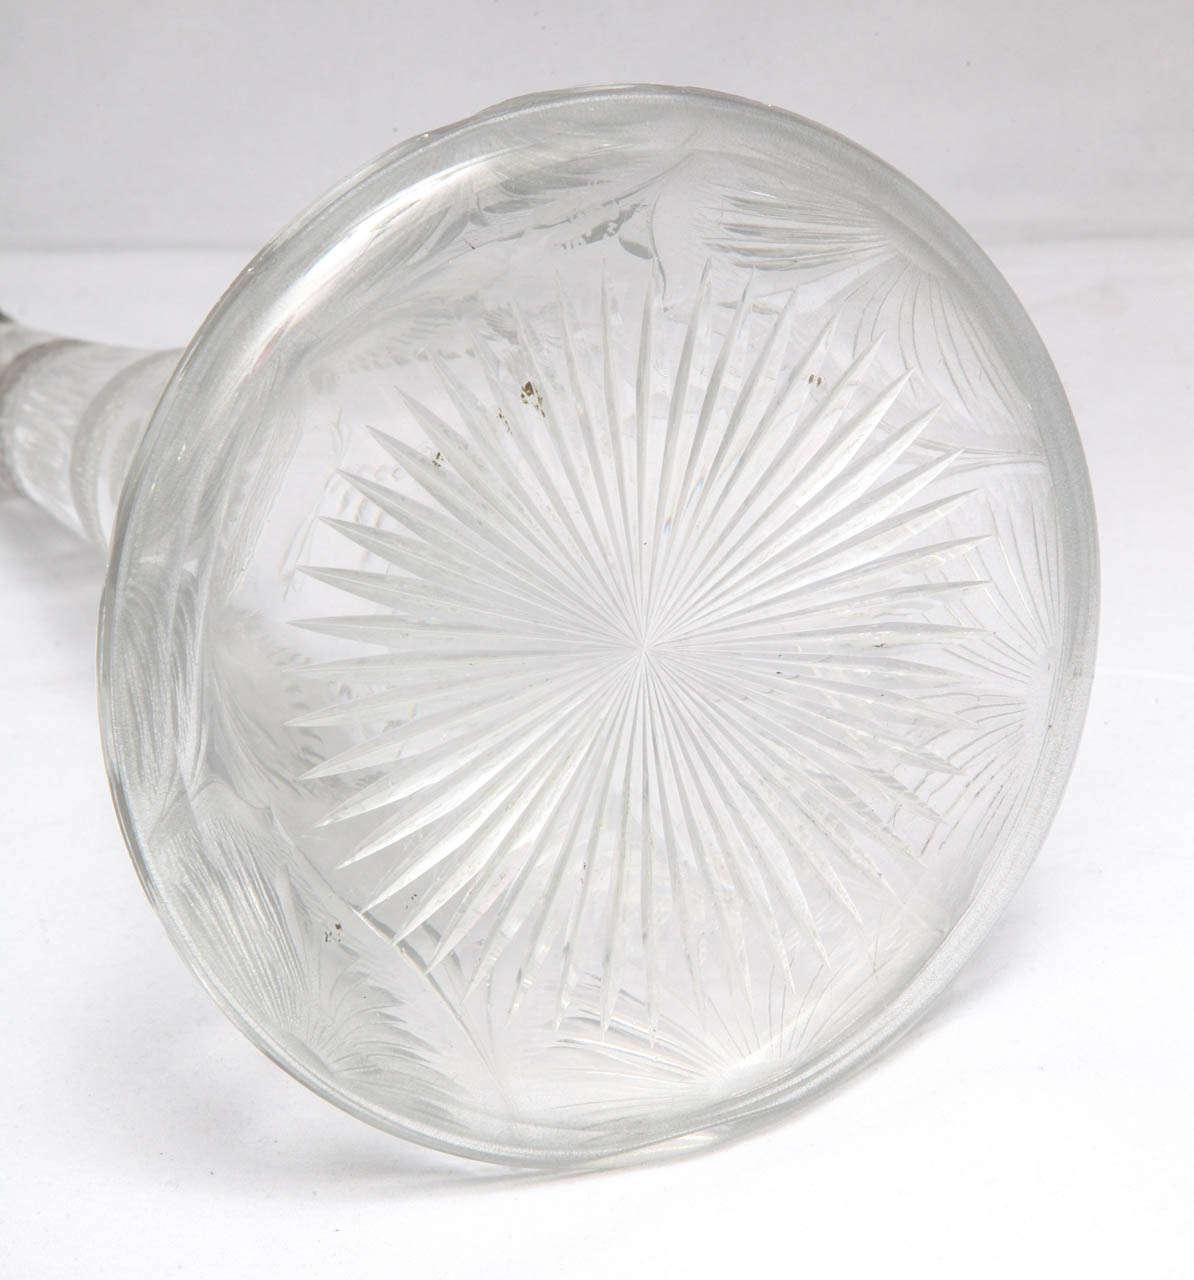 19th Century Very Rare Tall Sterling Silver-Mounted Tiffany & Co. Decanter For Sale